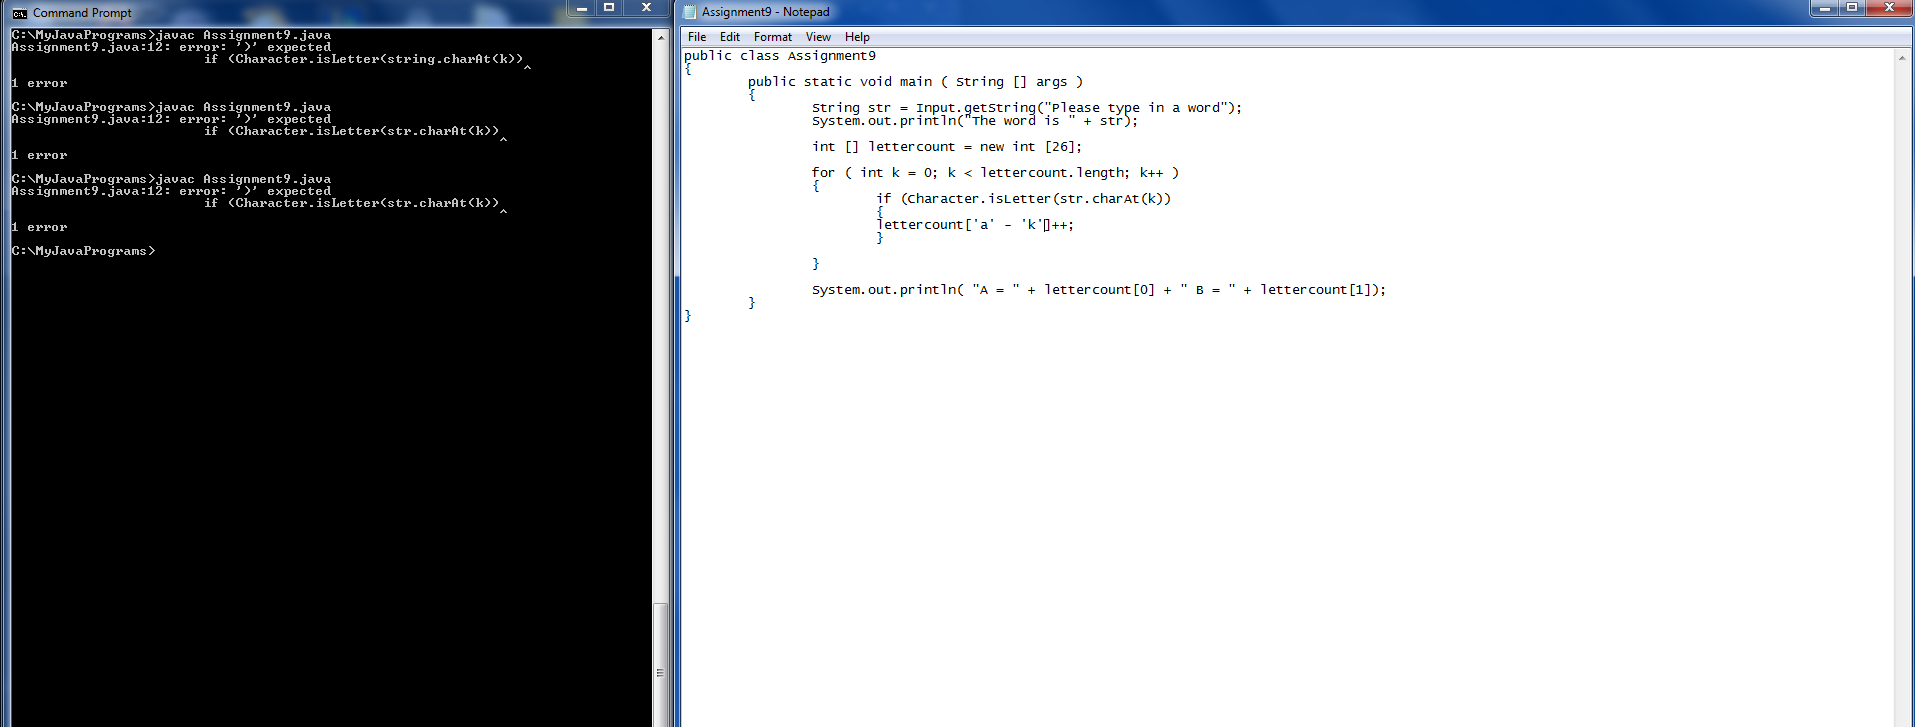 Help with a Programming assignment (Beginning Java forum at